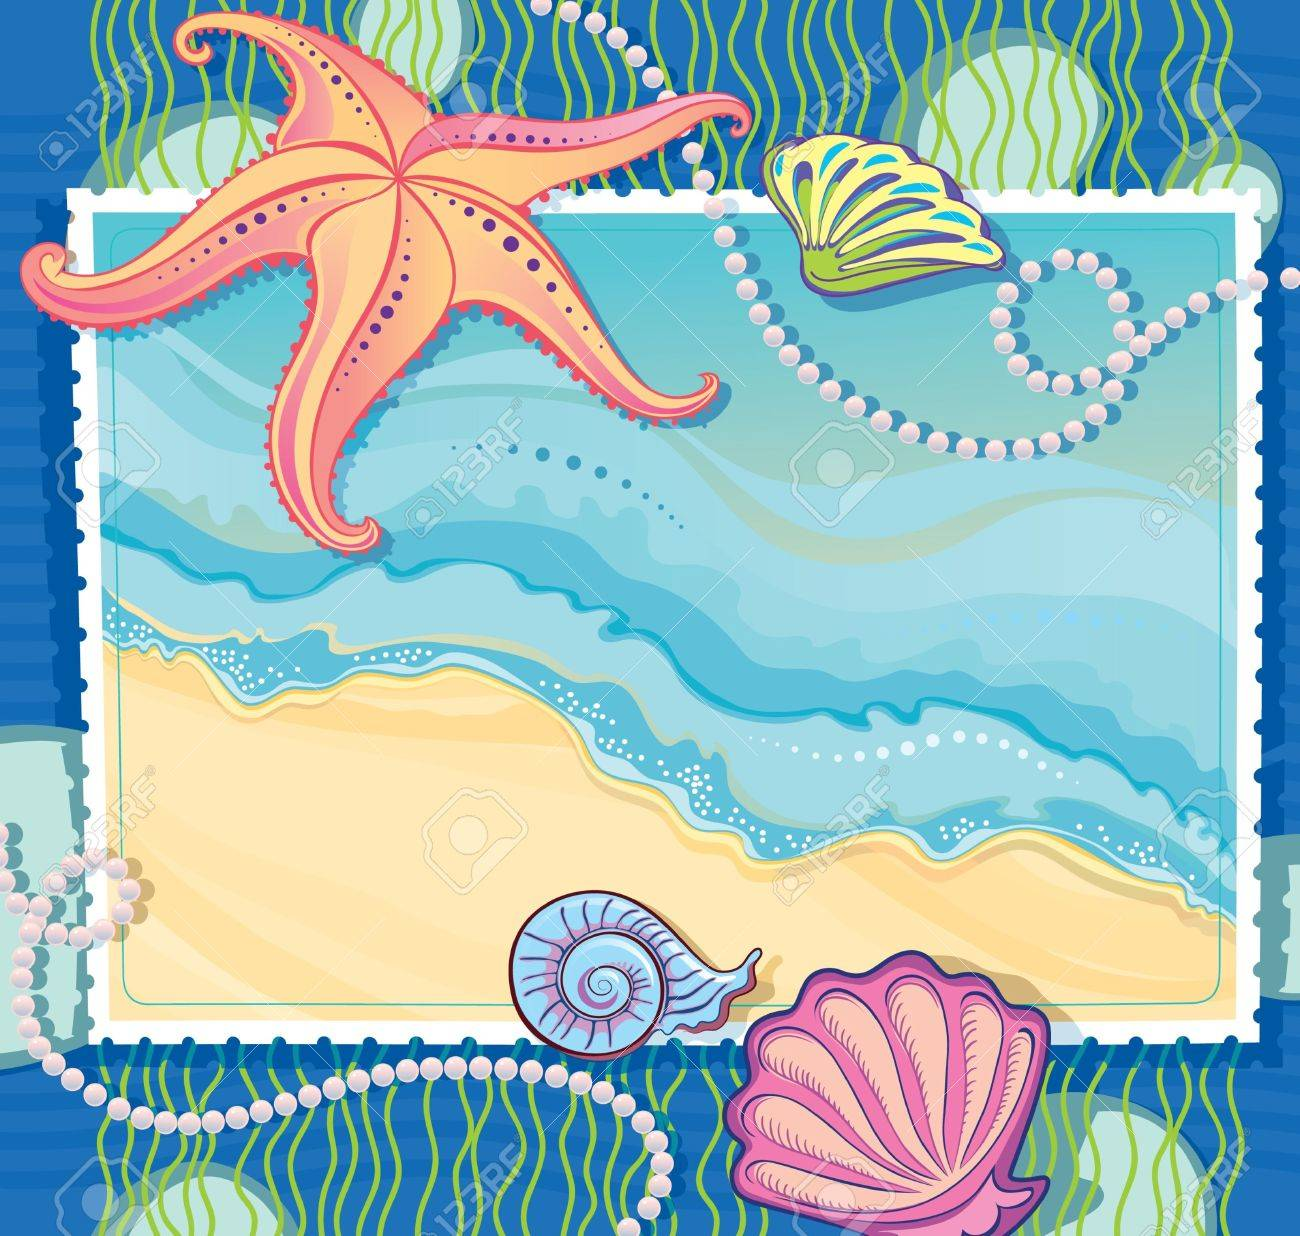 vector frame with a picture of a sea wave making of the starfish